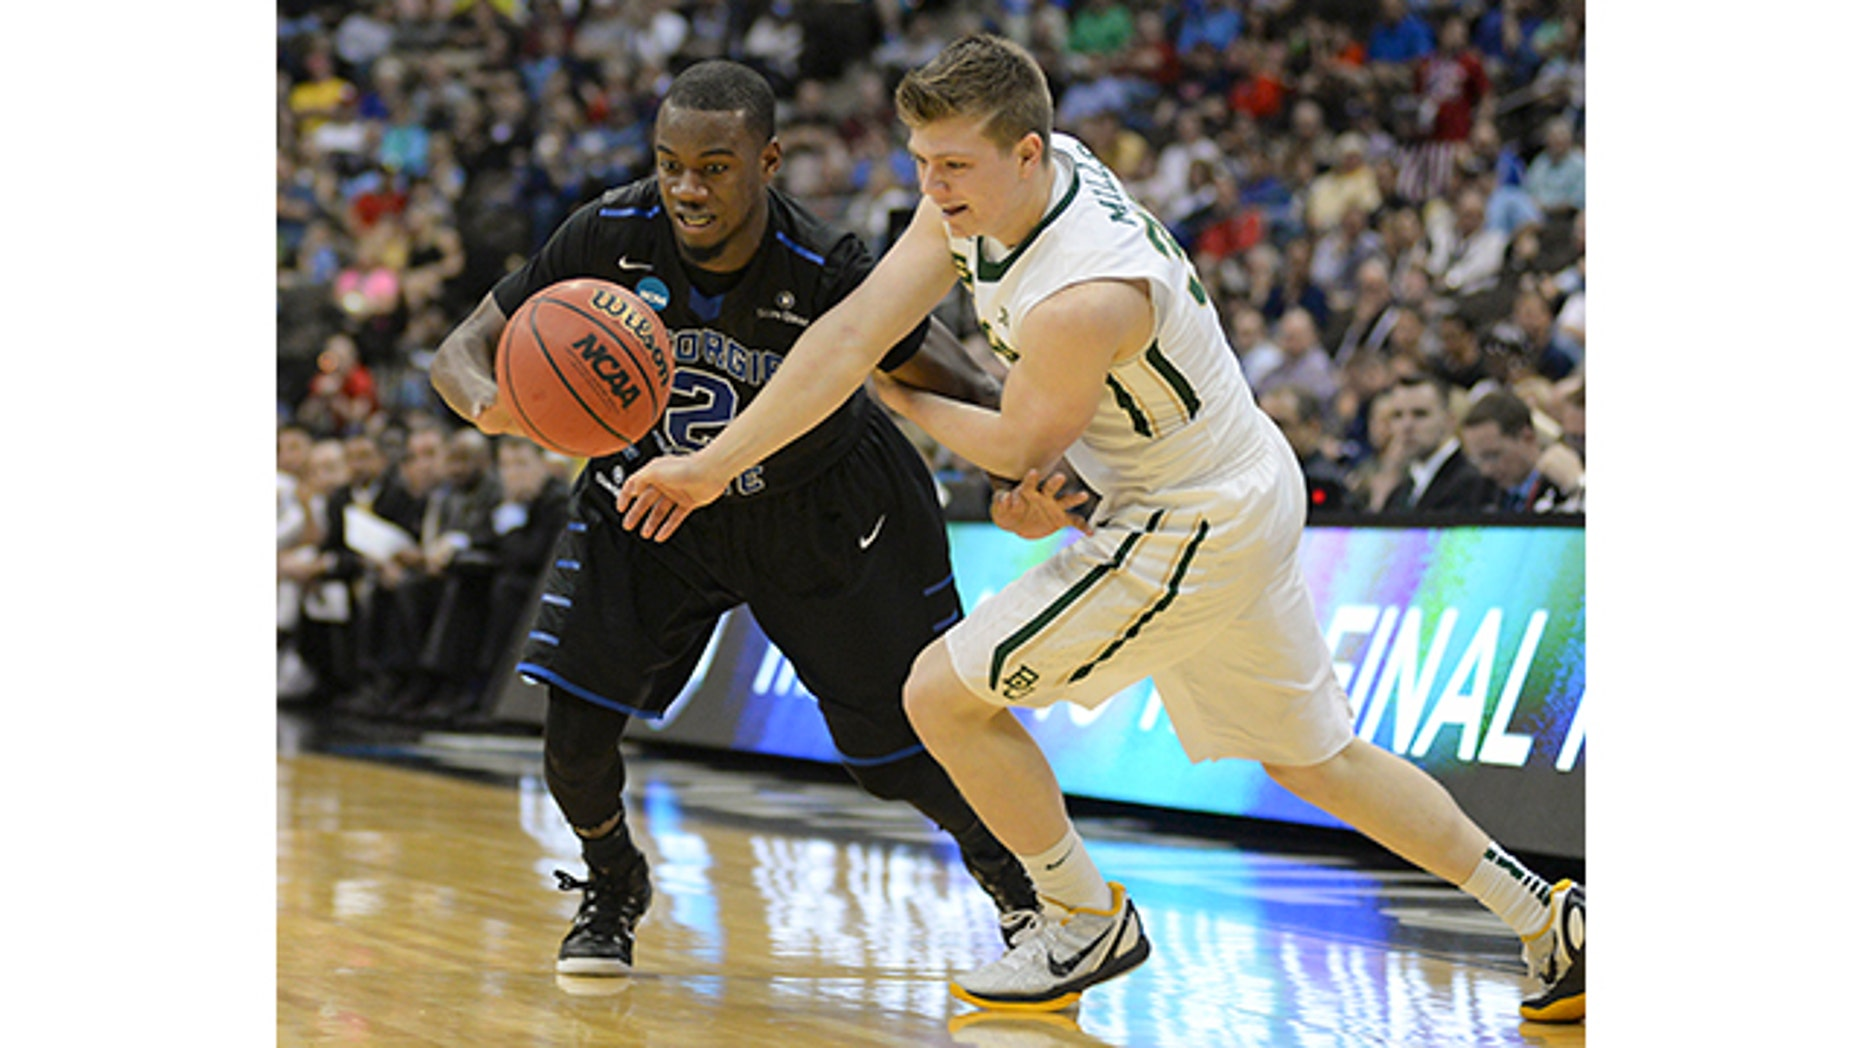 March 19, 2015: Georgia State guard Ryann Green, left, and Baylor guard Austin Mills, right, battle for the ball during the second half in the second round of the NCAA college basketball tournament in Jacksonville, Fla. (AP Photo/Rick Wilson)